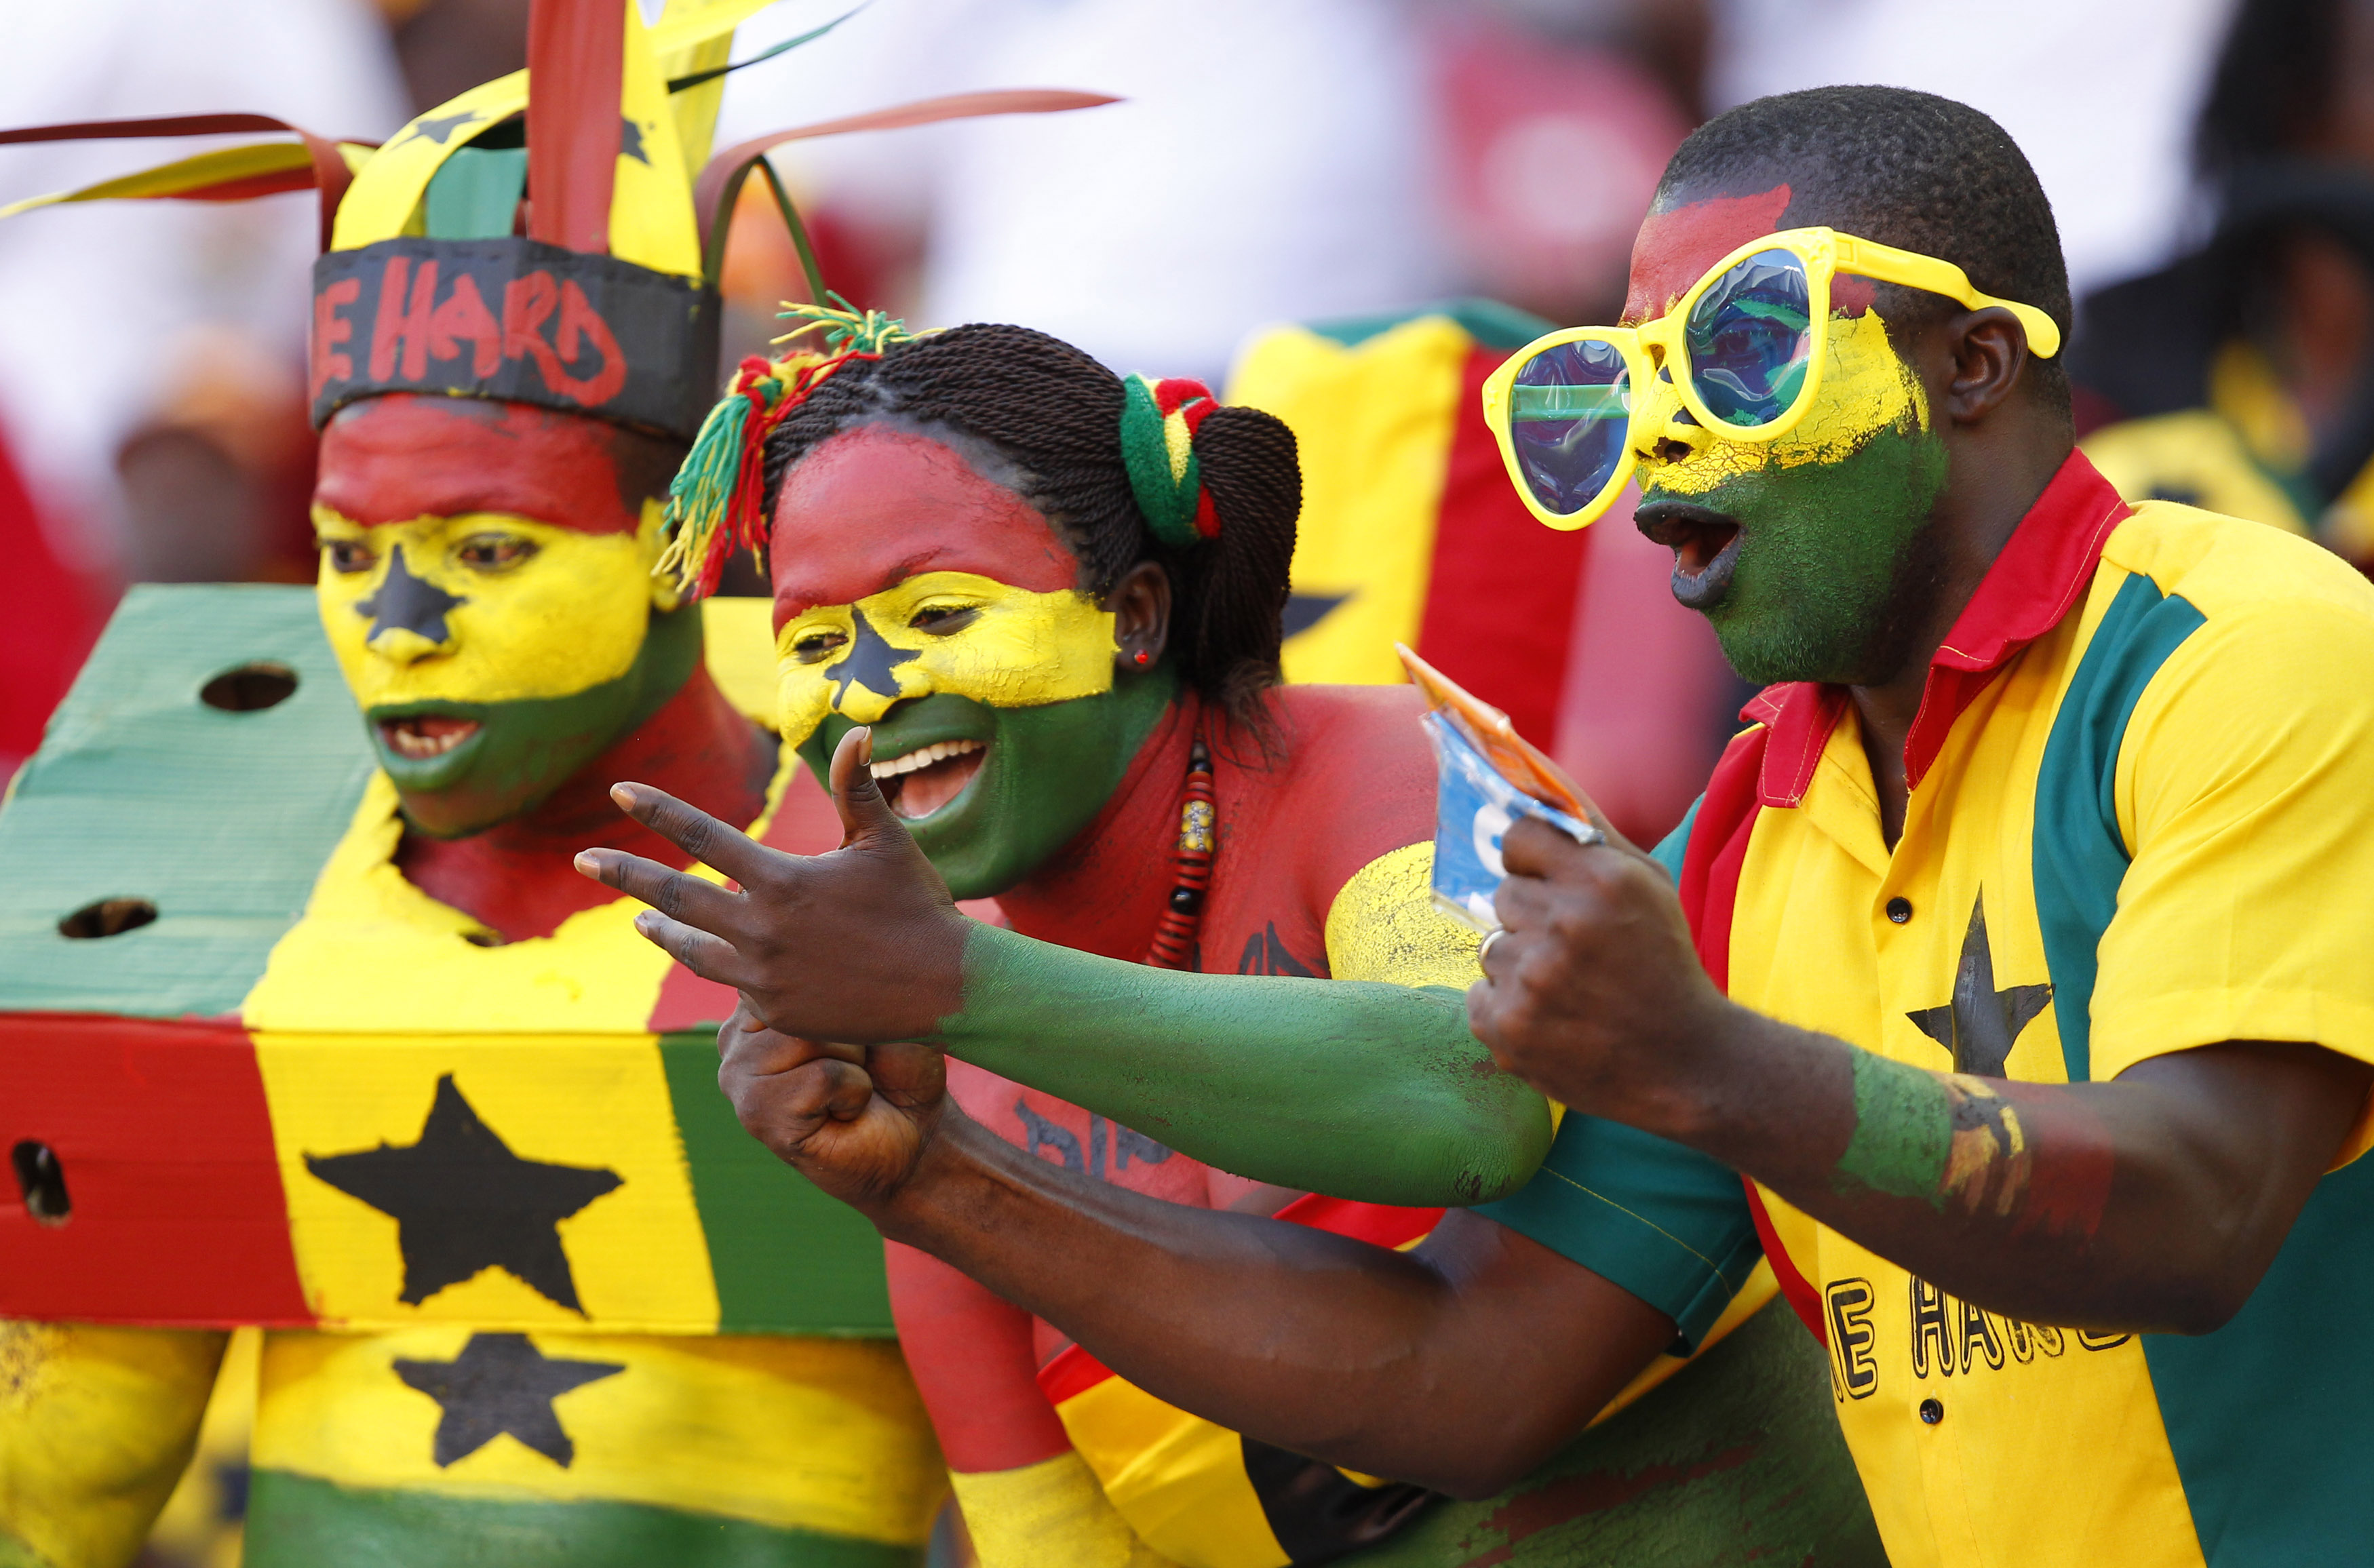 Ghana fans cheer their team during their African Nations Cup Group B soccer match against Mali at the Nelson Mandela Bay Stadium in Port Elizabet